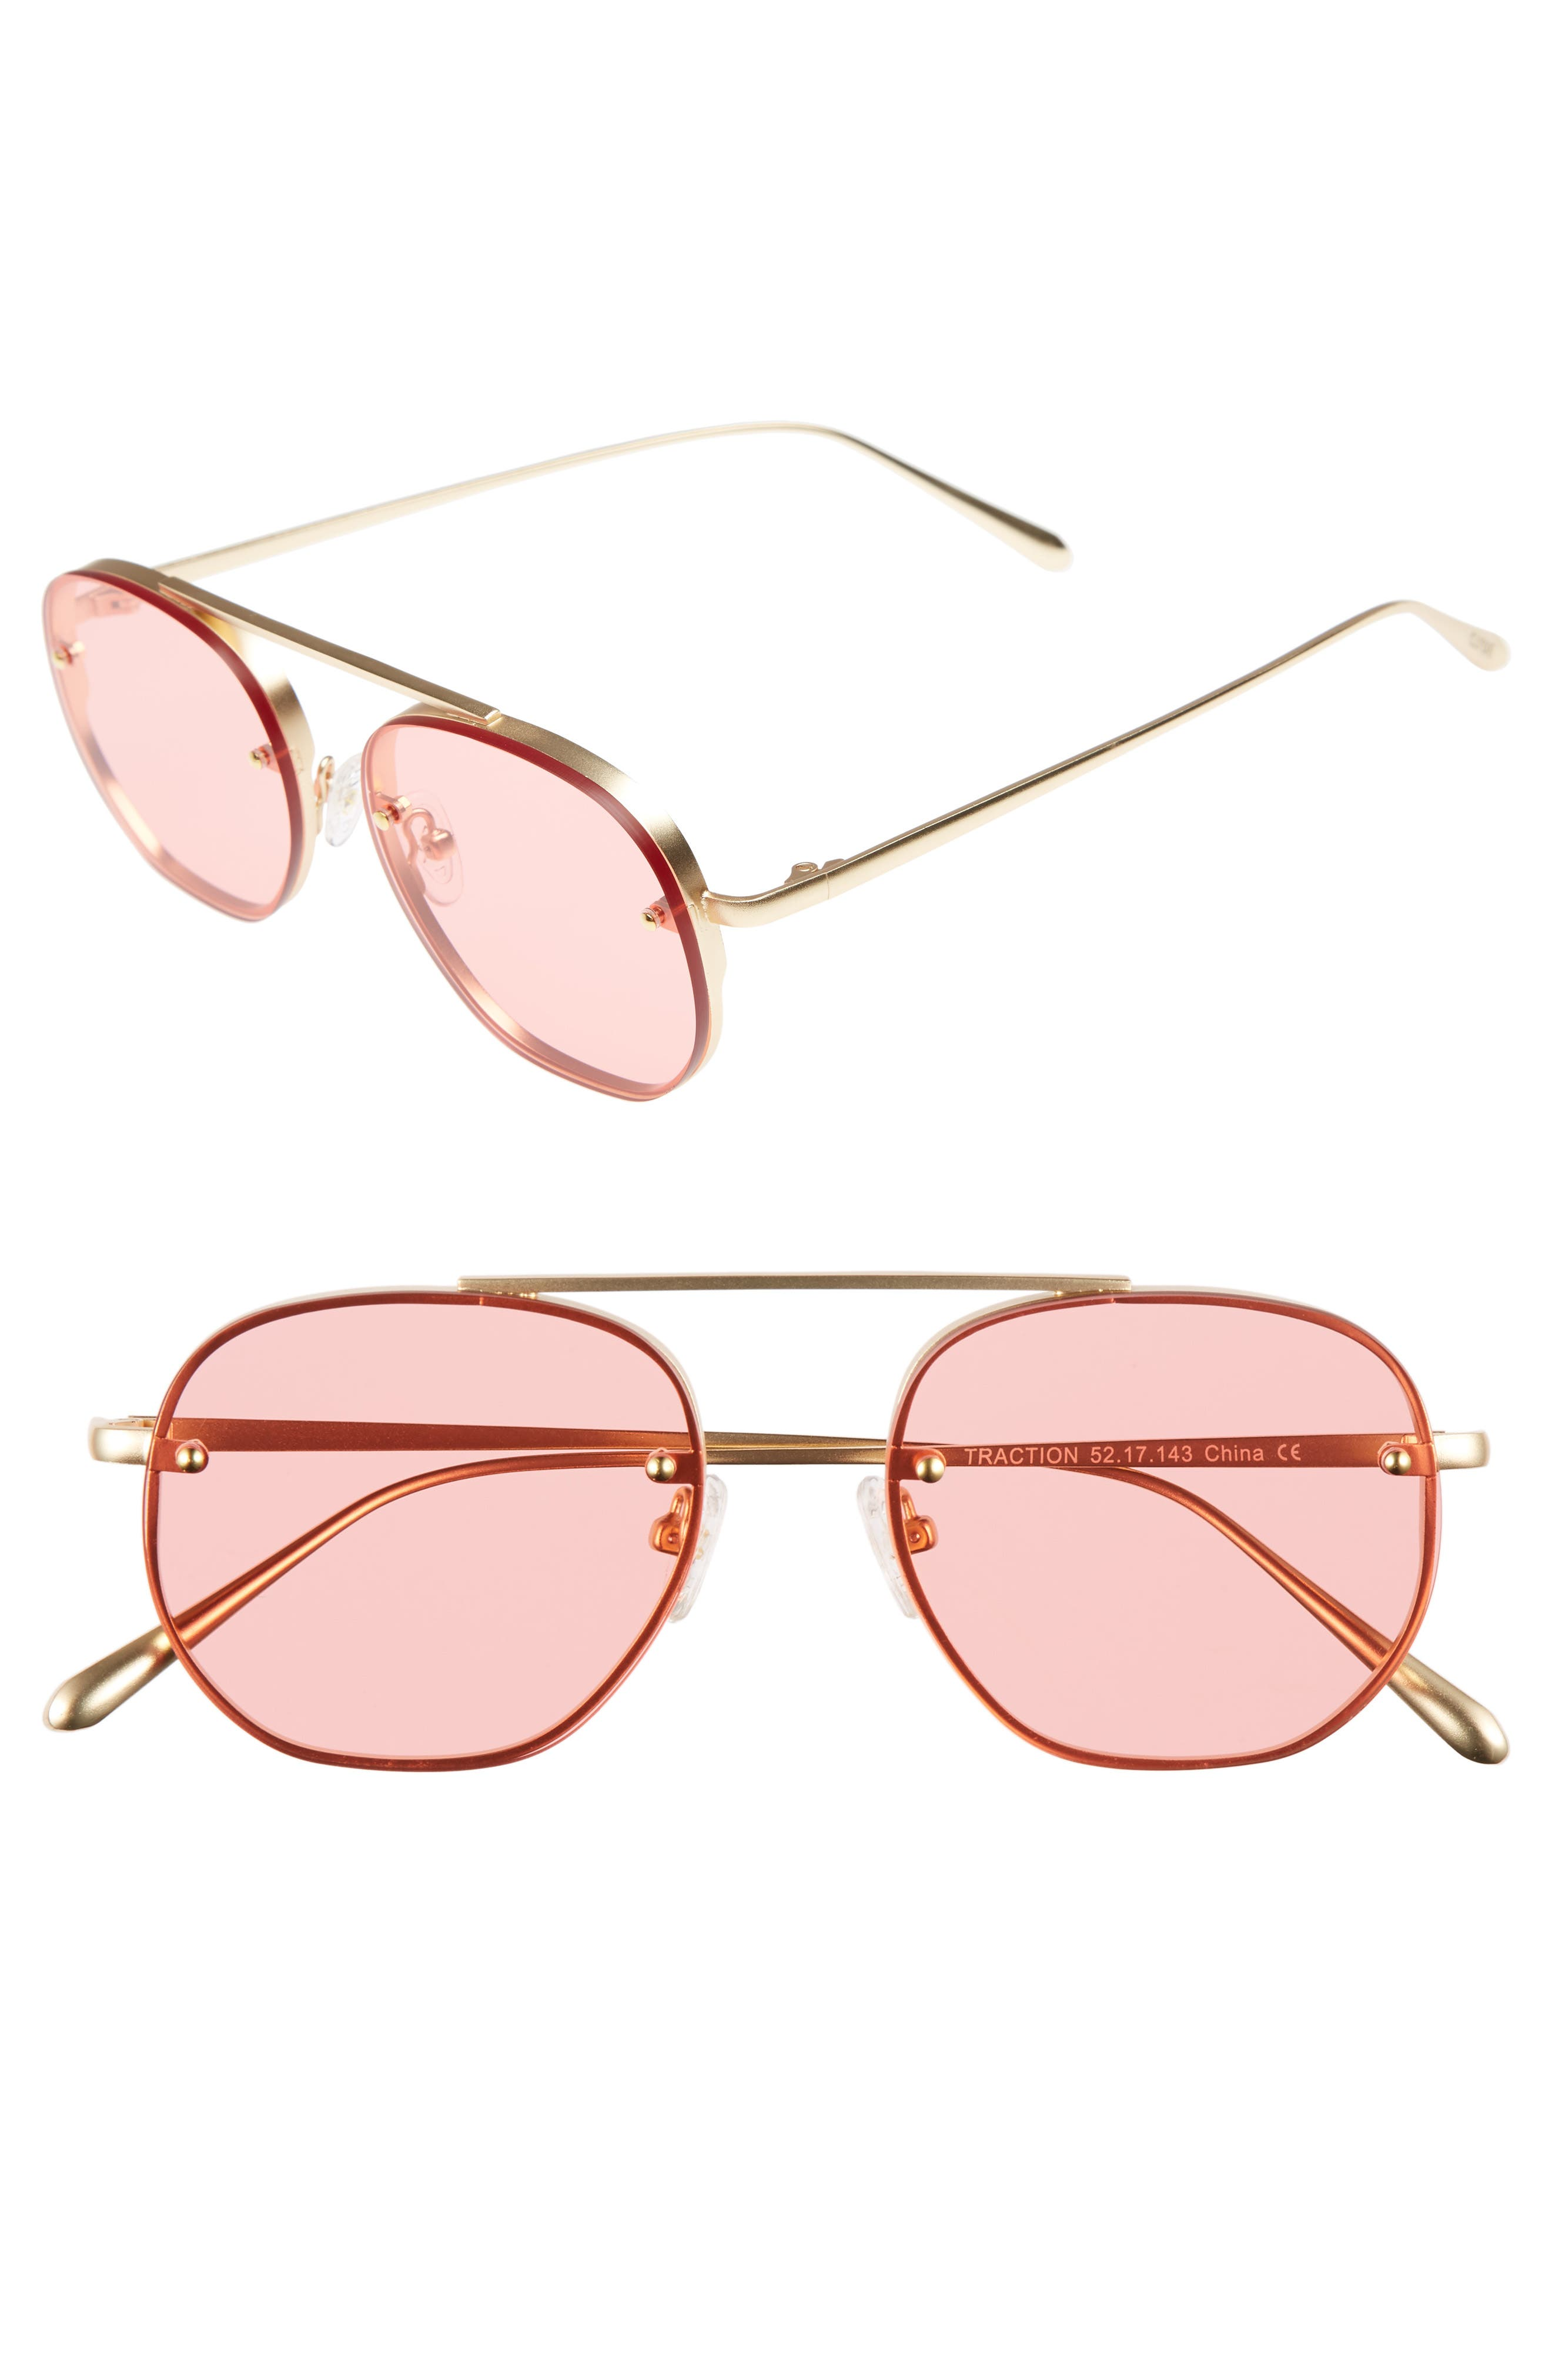 Traction 52mm Aviator Sunglasses,                         Main,                         color, Red Tint